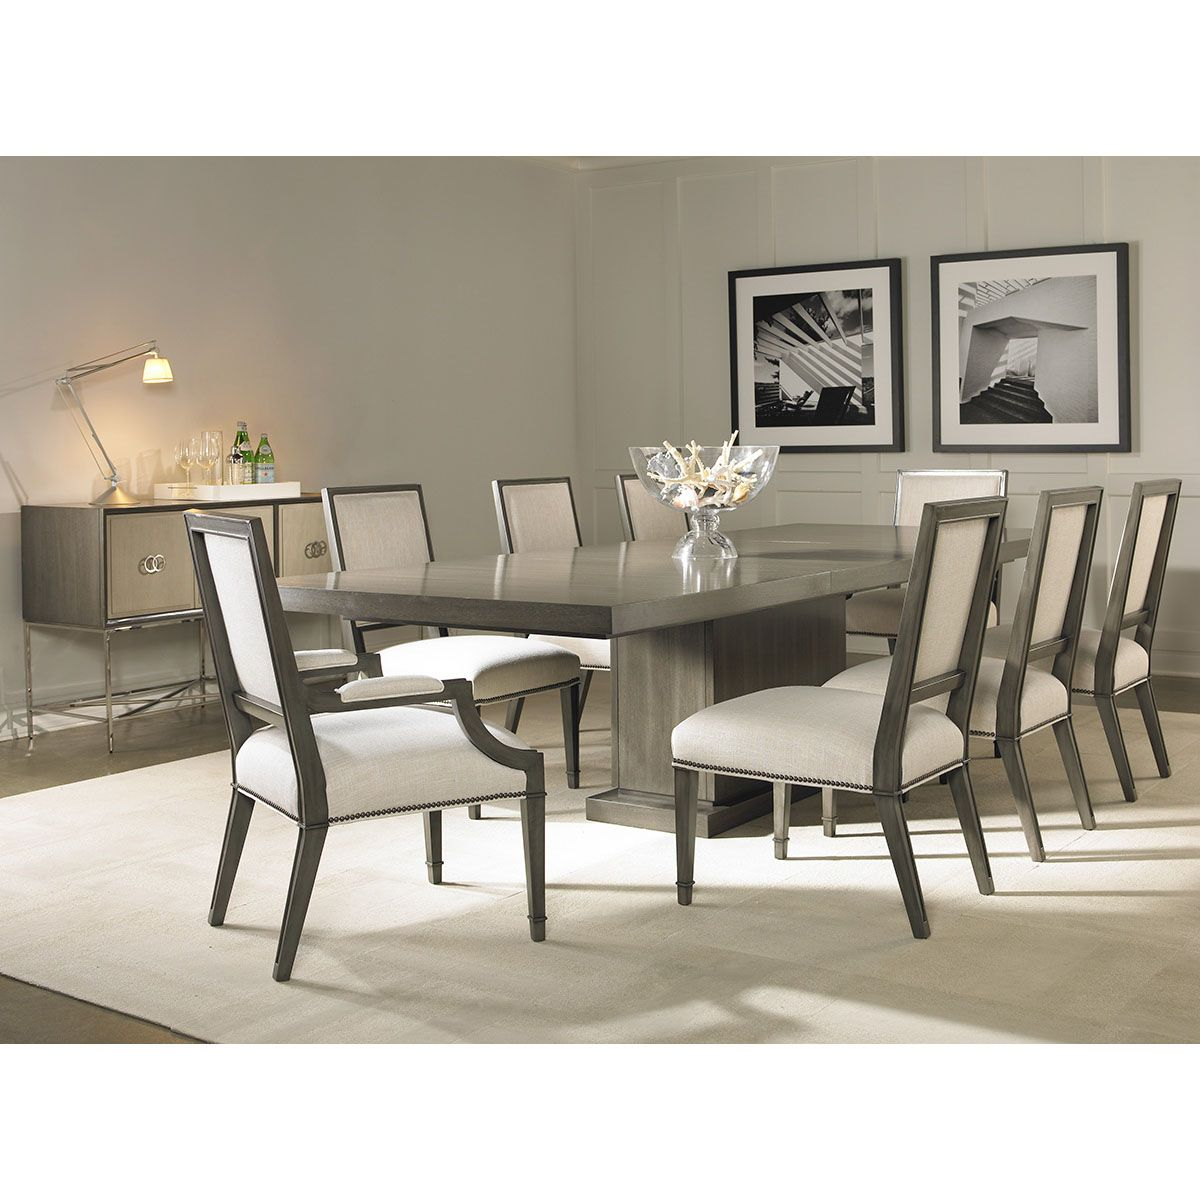 Casual Dining Room Buffet Decorating Ideas: Pin By Cennos On Vanguad Furniture